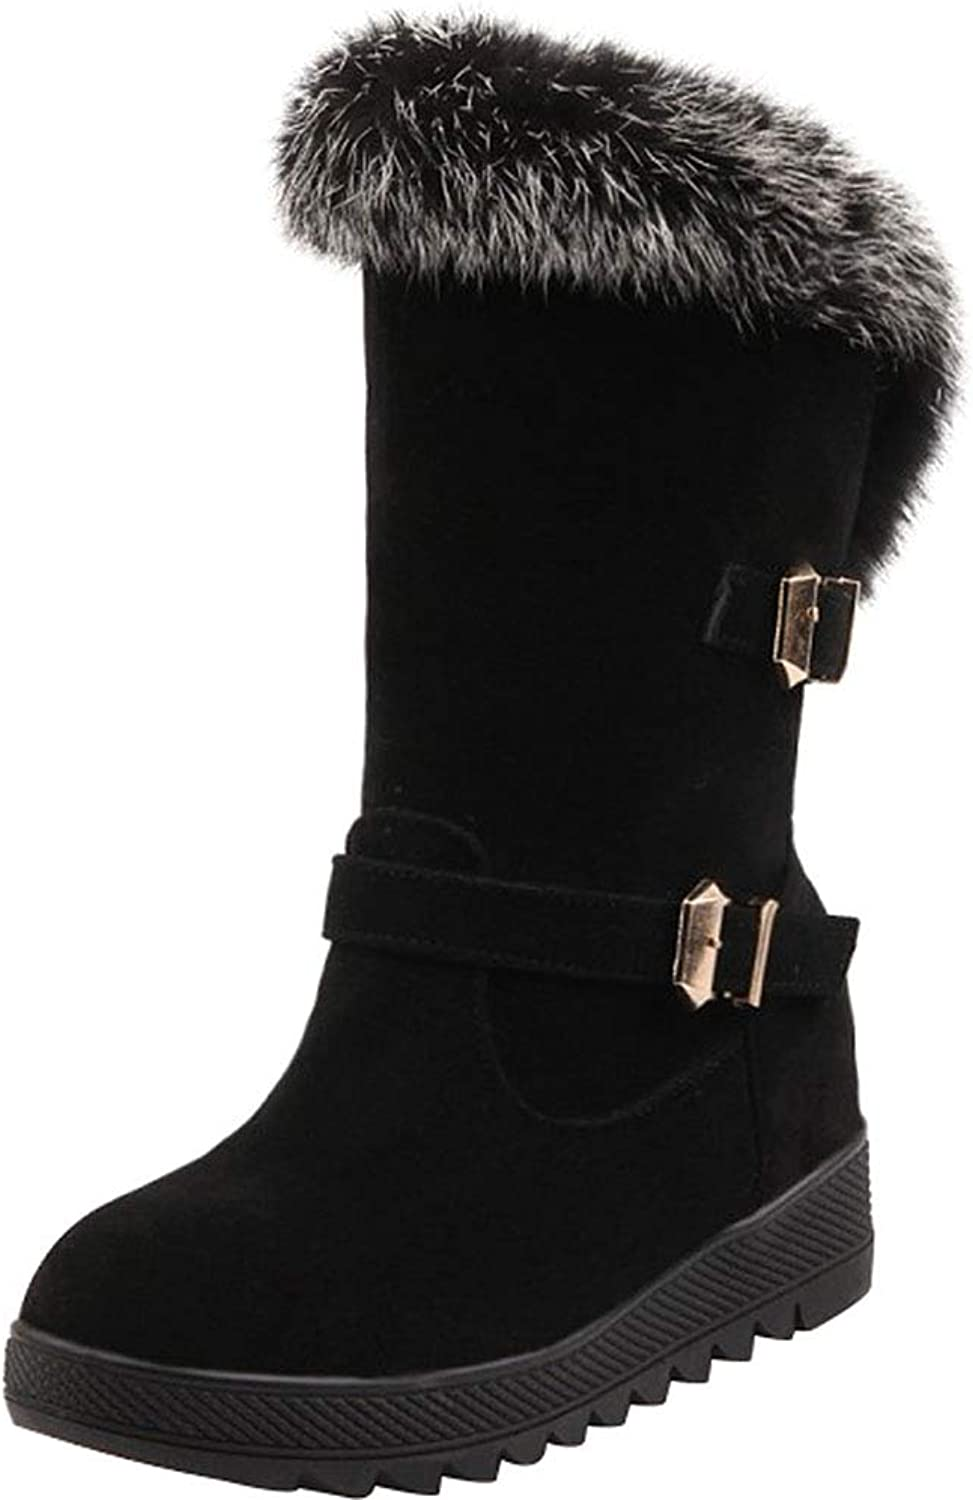 Sekesin Women Winter Snow Boots Mid Calf Ladies Faux Fur Warm shoes Slip-On Suede Round Toe Martin Boots Heel